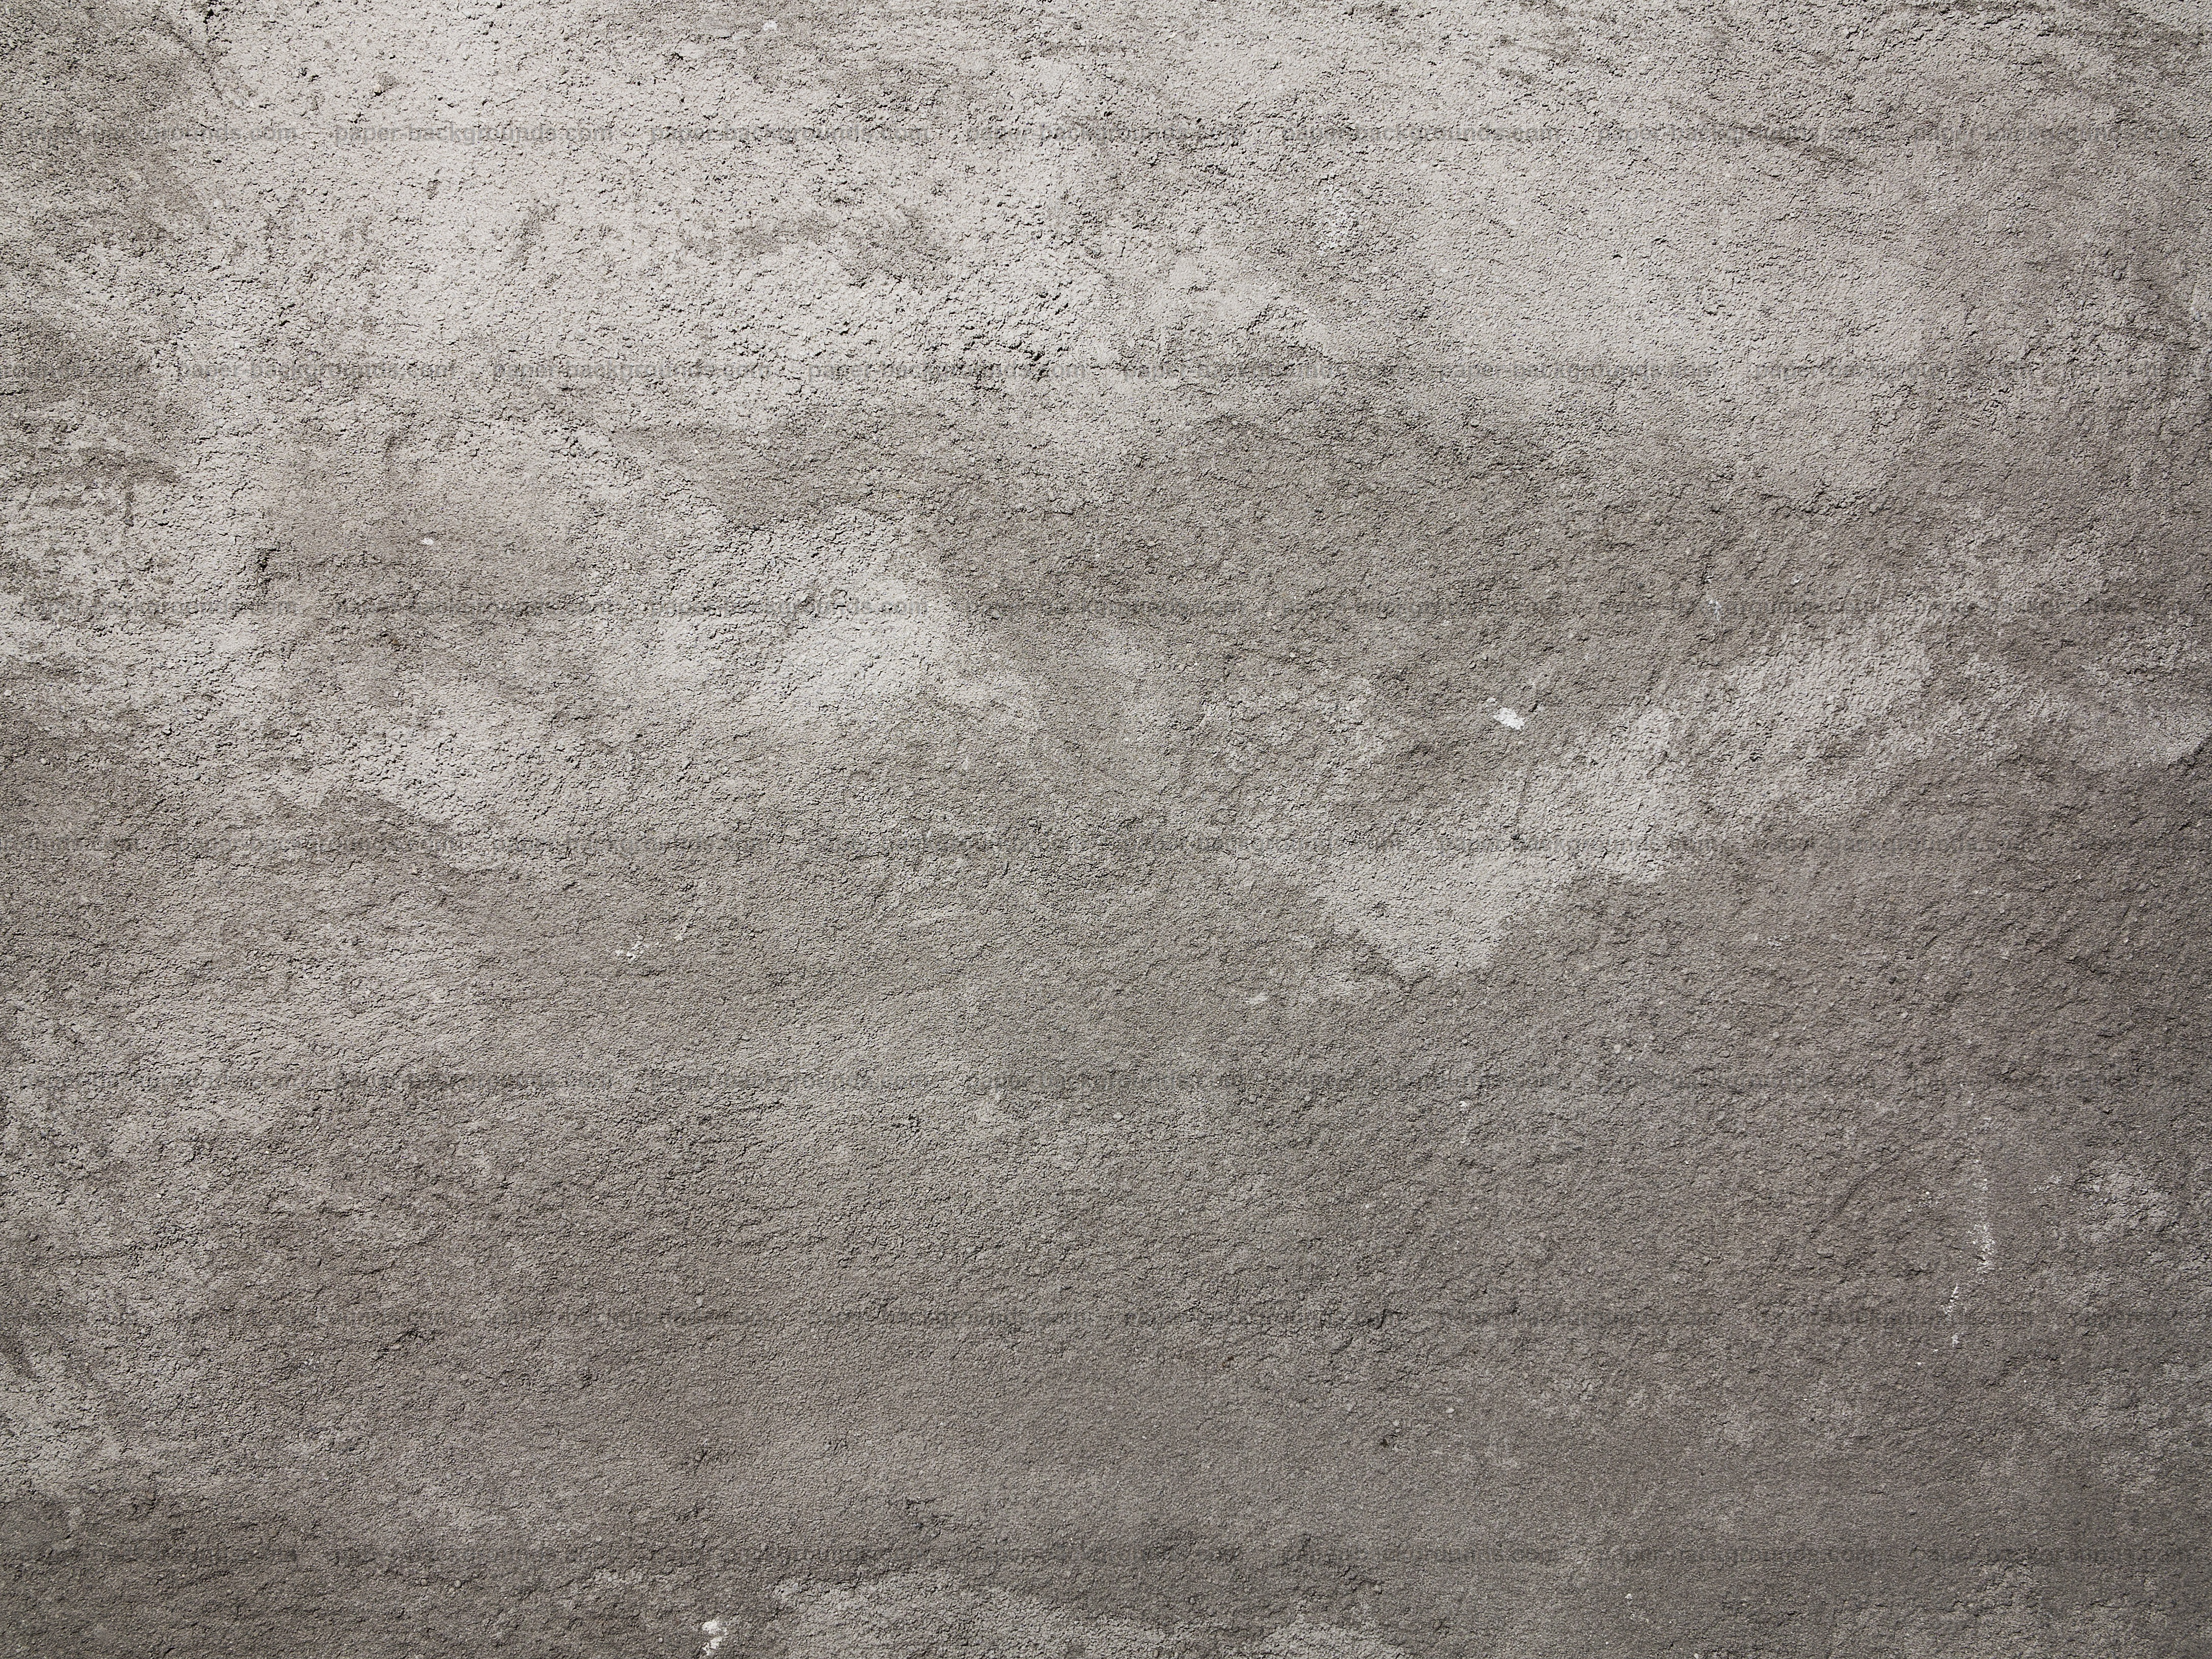 Paper Backgrounds Vintage Concrete Wall Background